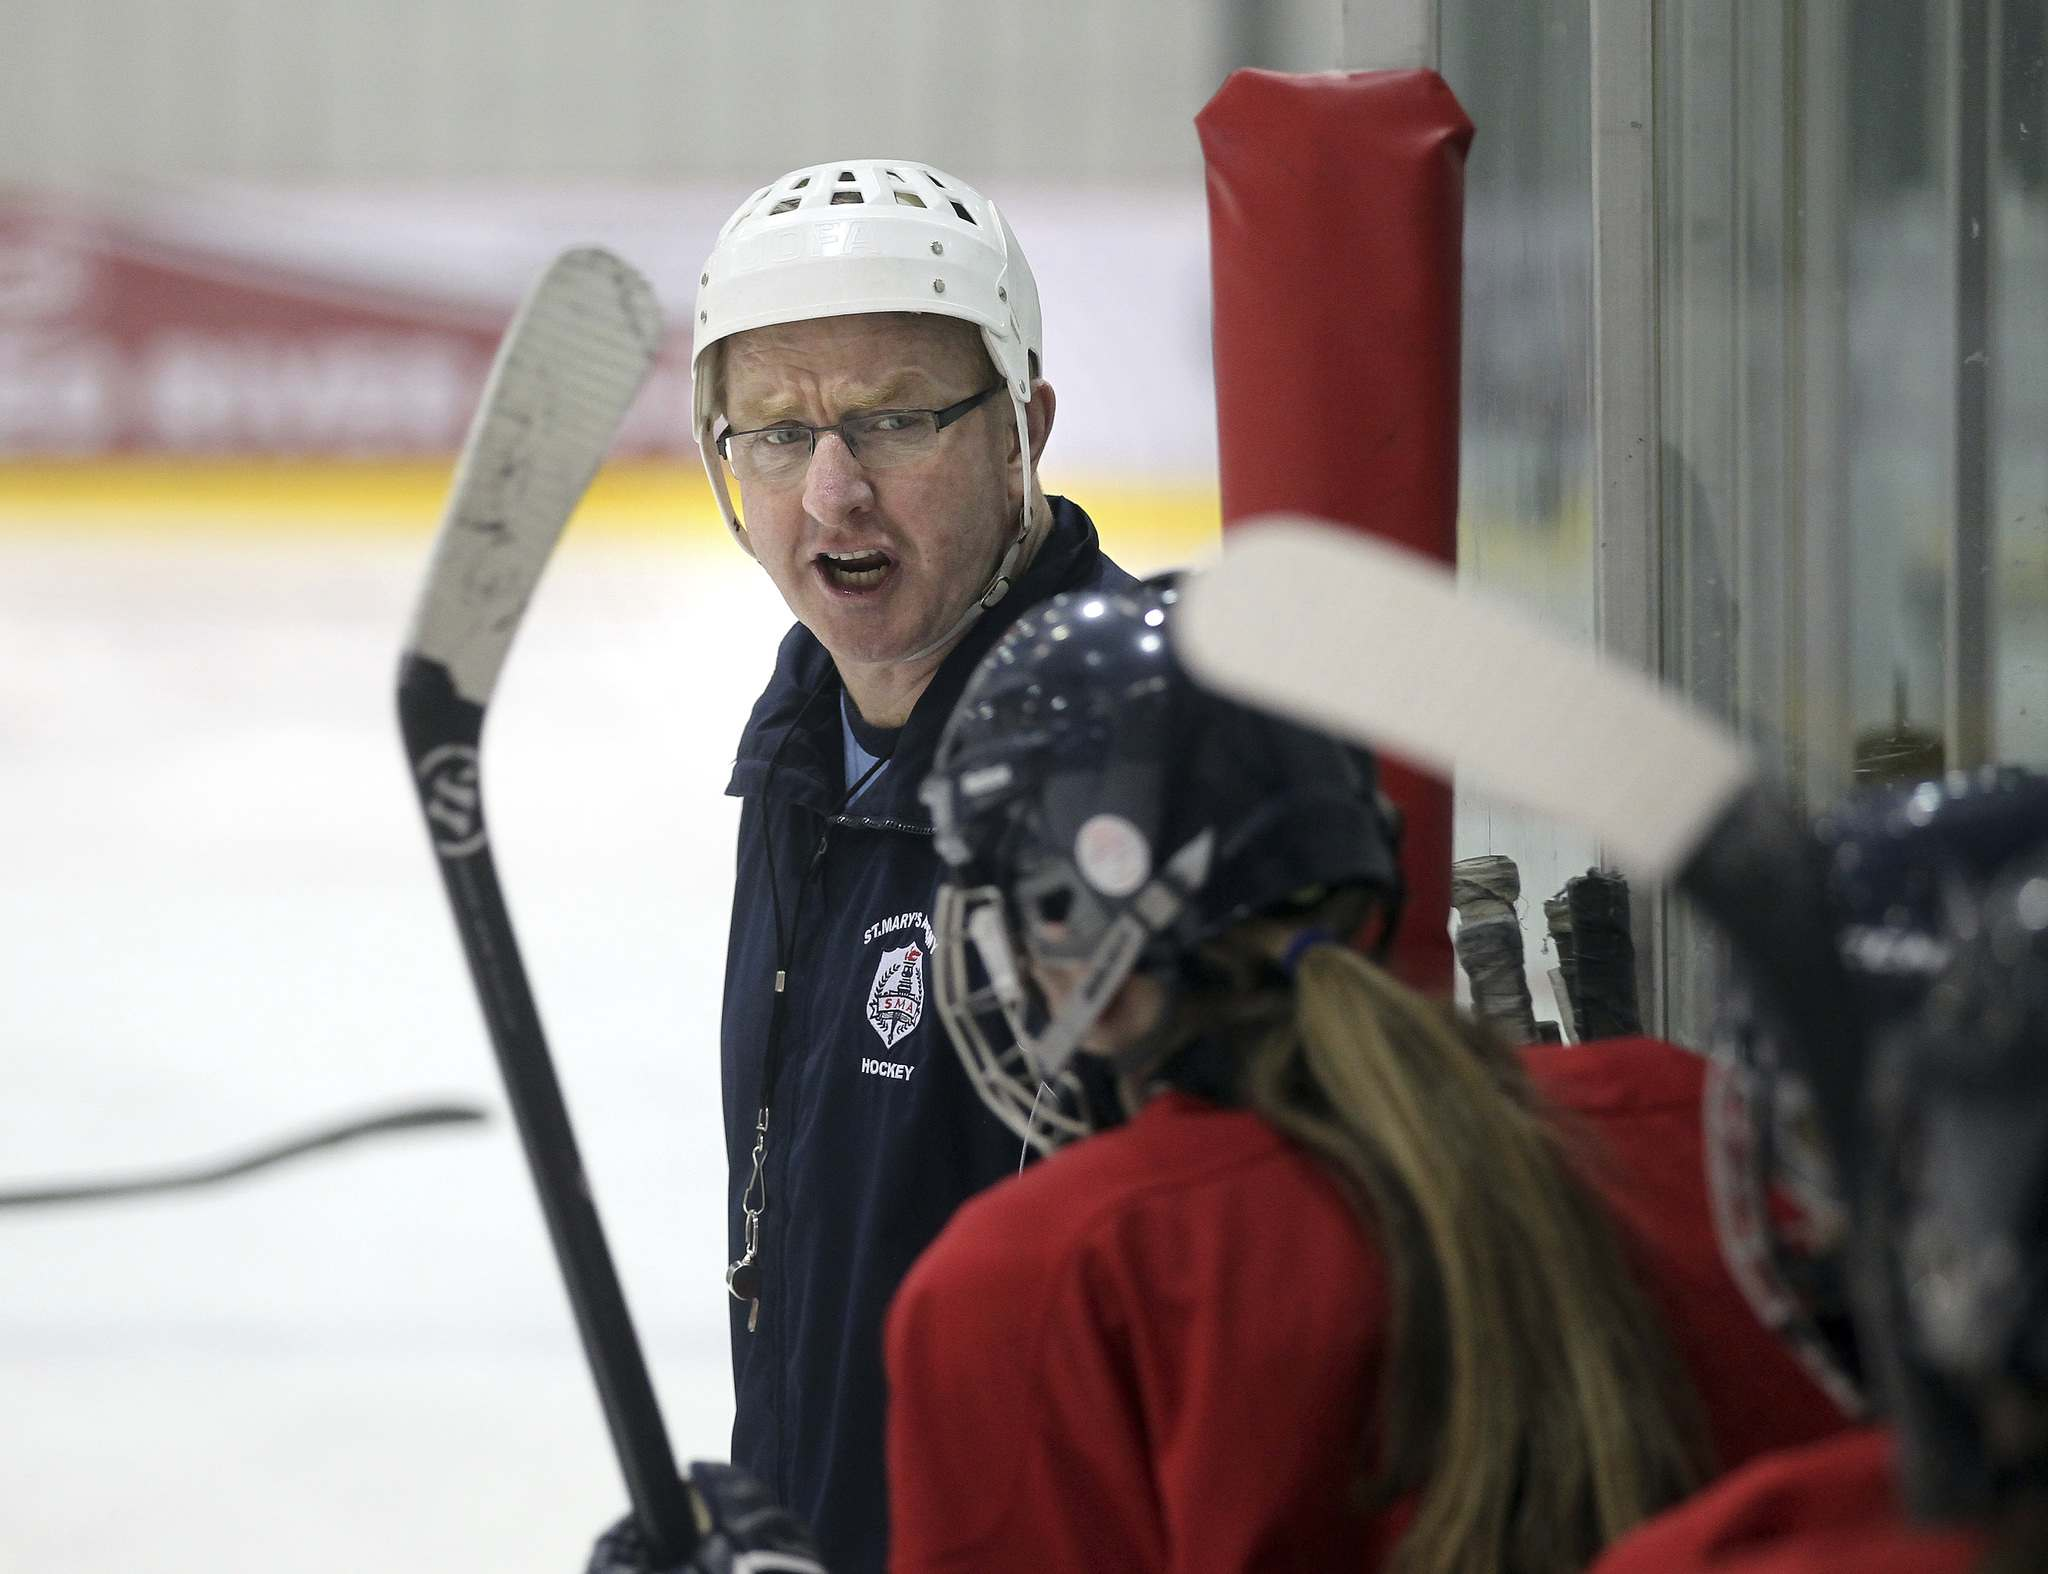 Long-time St. Mary's head coach Larry Bumstead says the female game is evolving. (Phil Hossack / Winnipeg Free Press files)